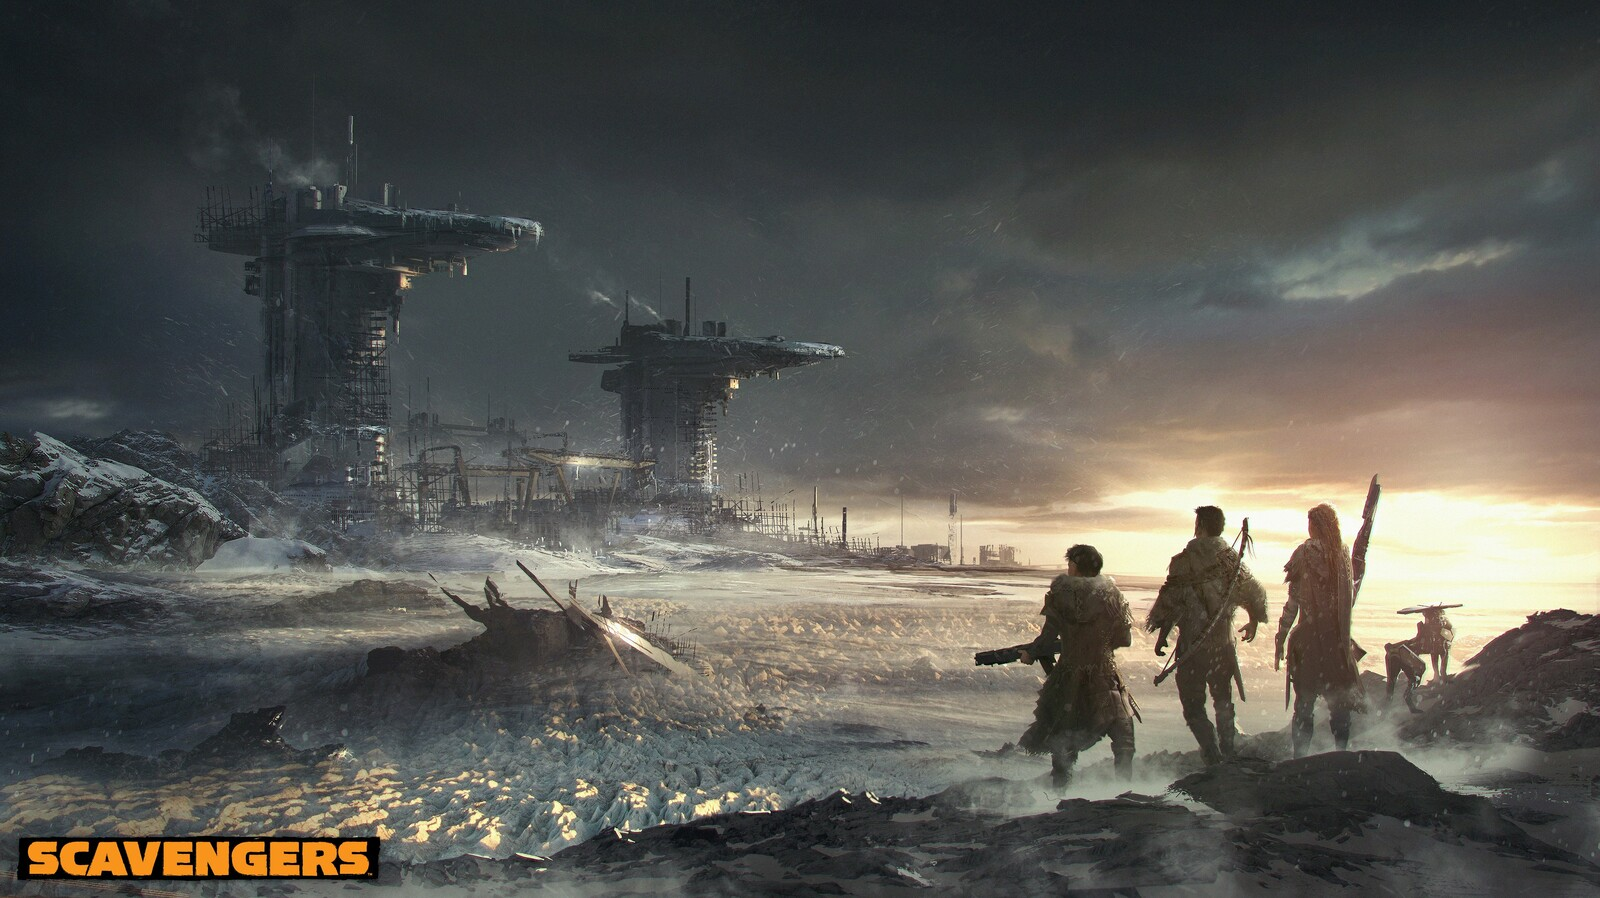 SCAVENGERS - KEY ART